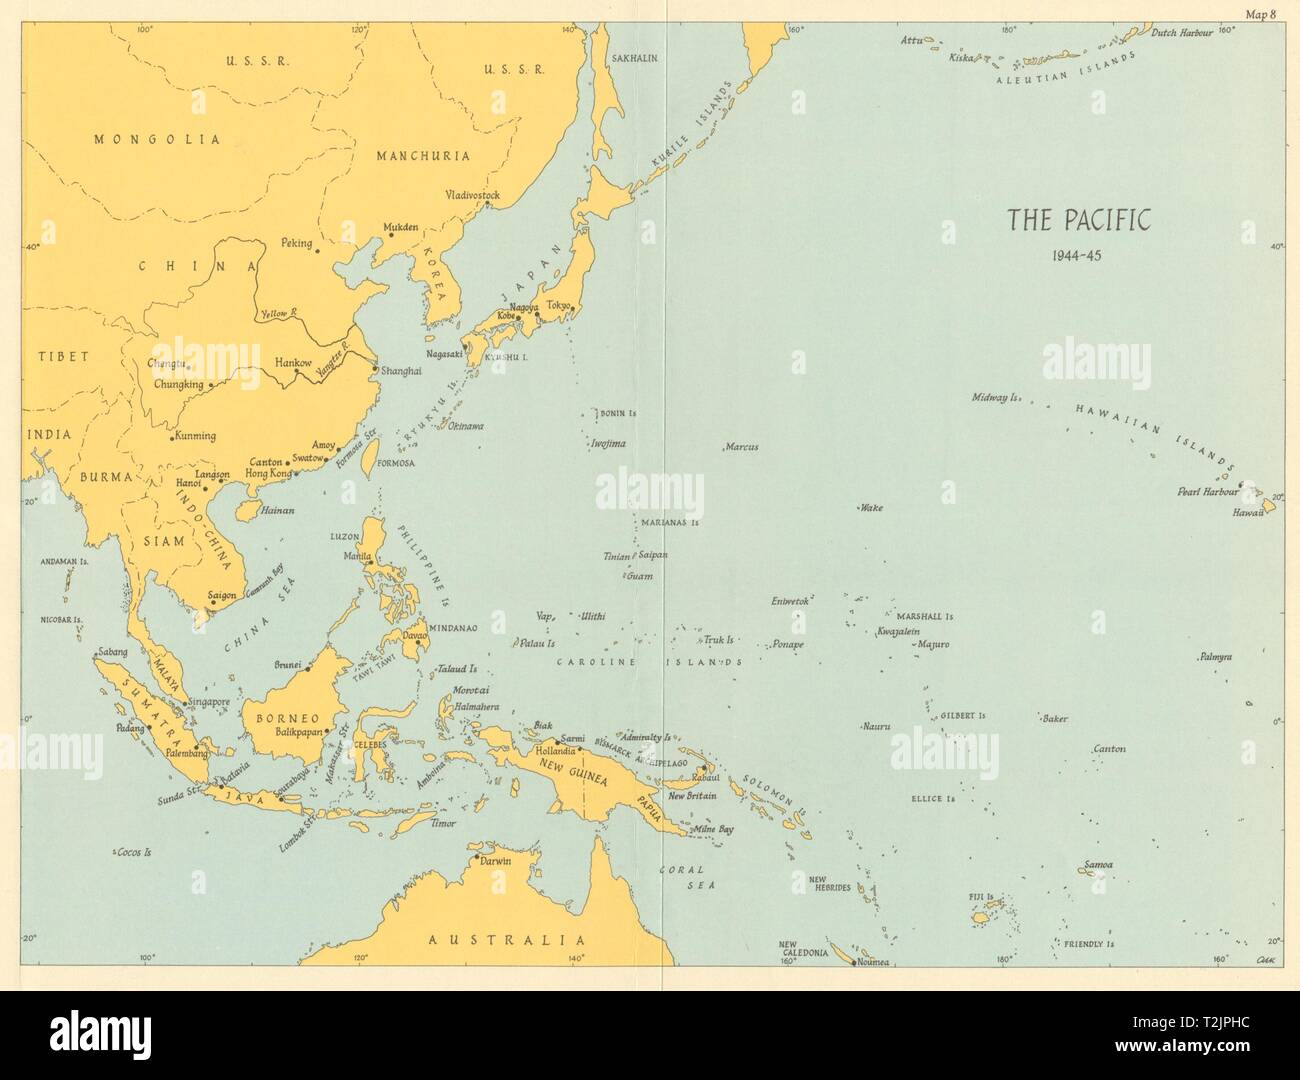 Picture of: Pacific Ocean Theatre 1944 45 World War 2 1965 Old Vintage Map Plan Chart Stock Photo Alamy